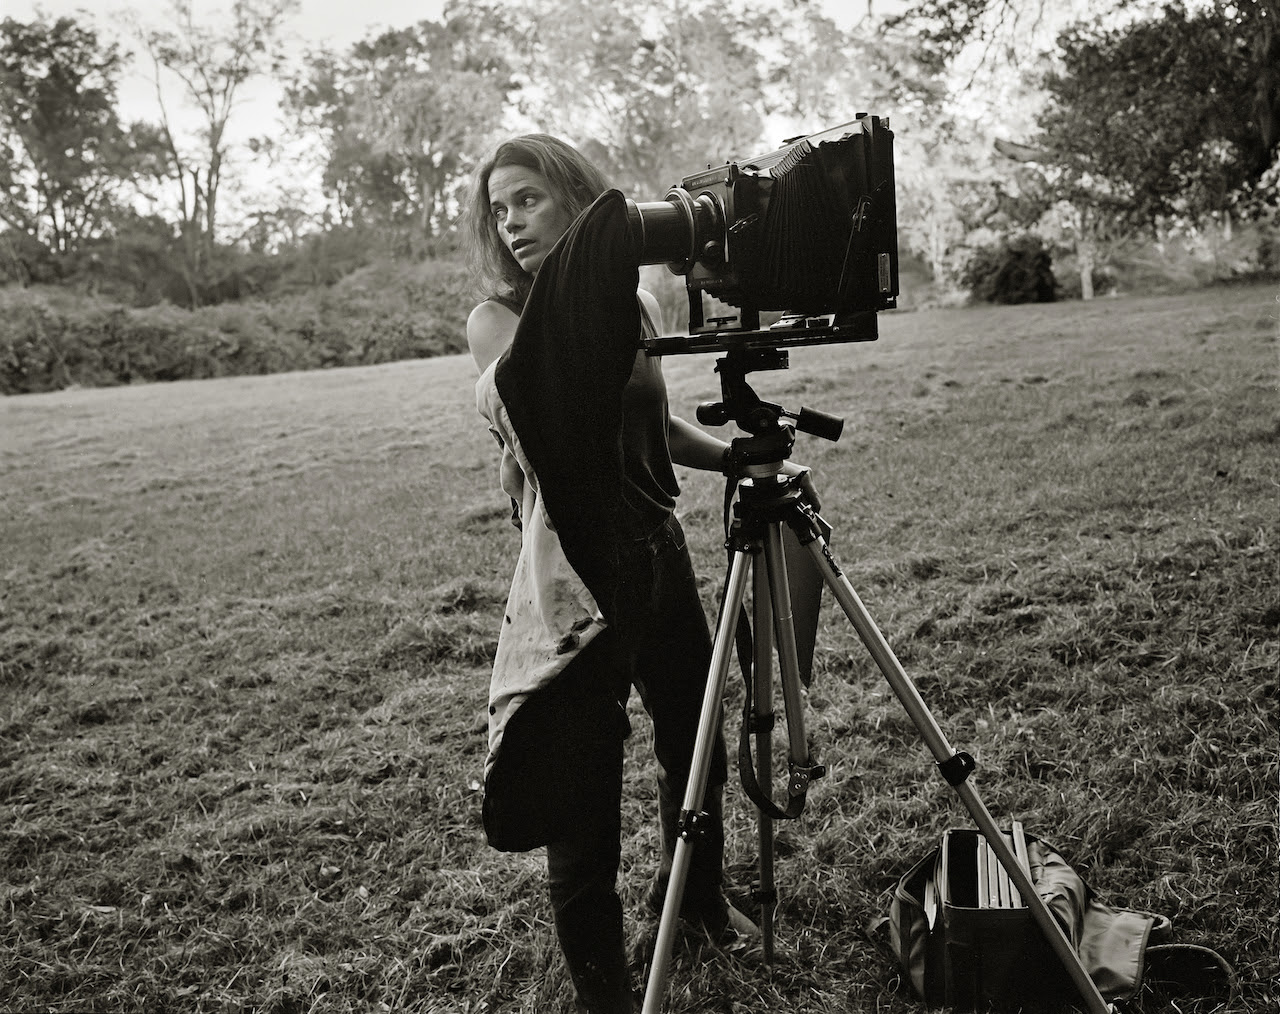 R. Kim Rushing, Sally with camera (c. 1998). Gelatin silver print. Collection of Sally Mann. Image © R. Kim Rushing.